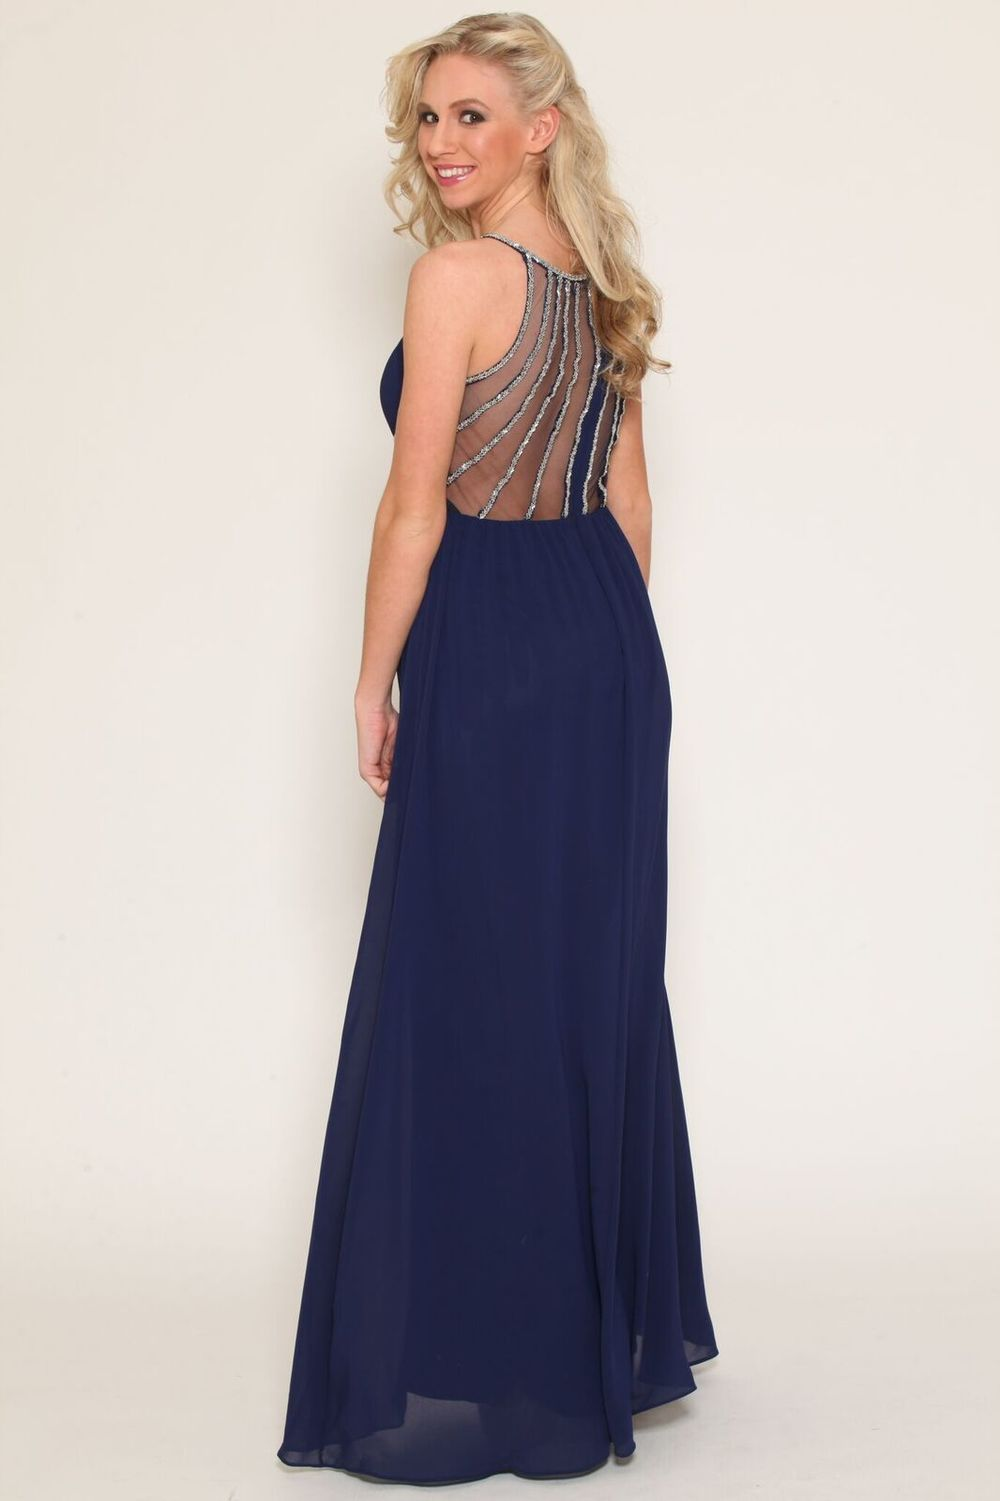 Mesh Back Detail Embellished Navy Gown $98